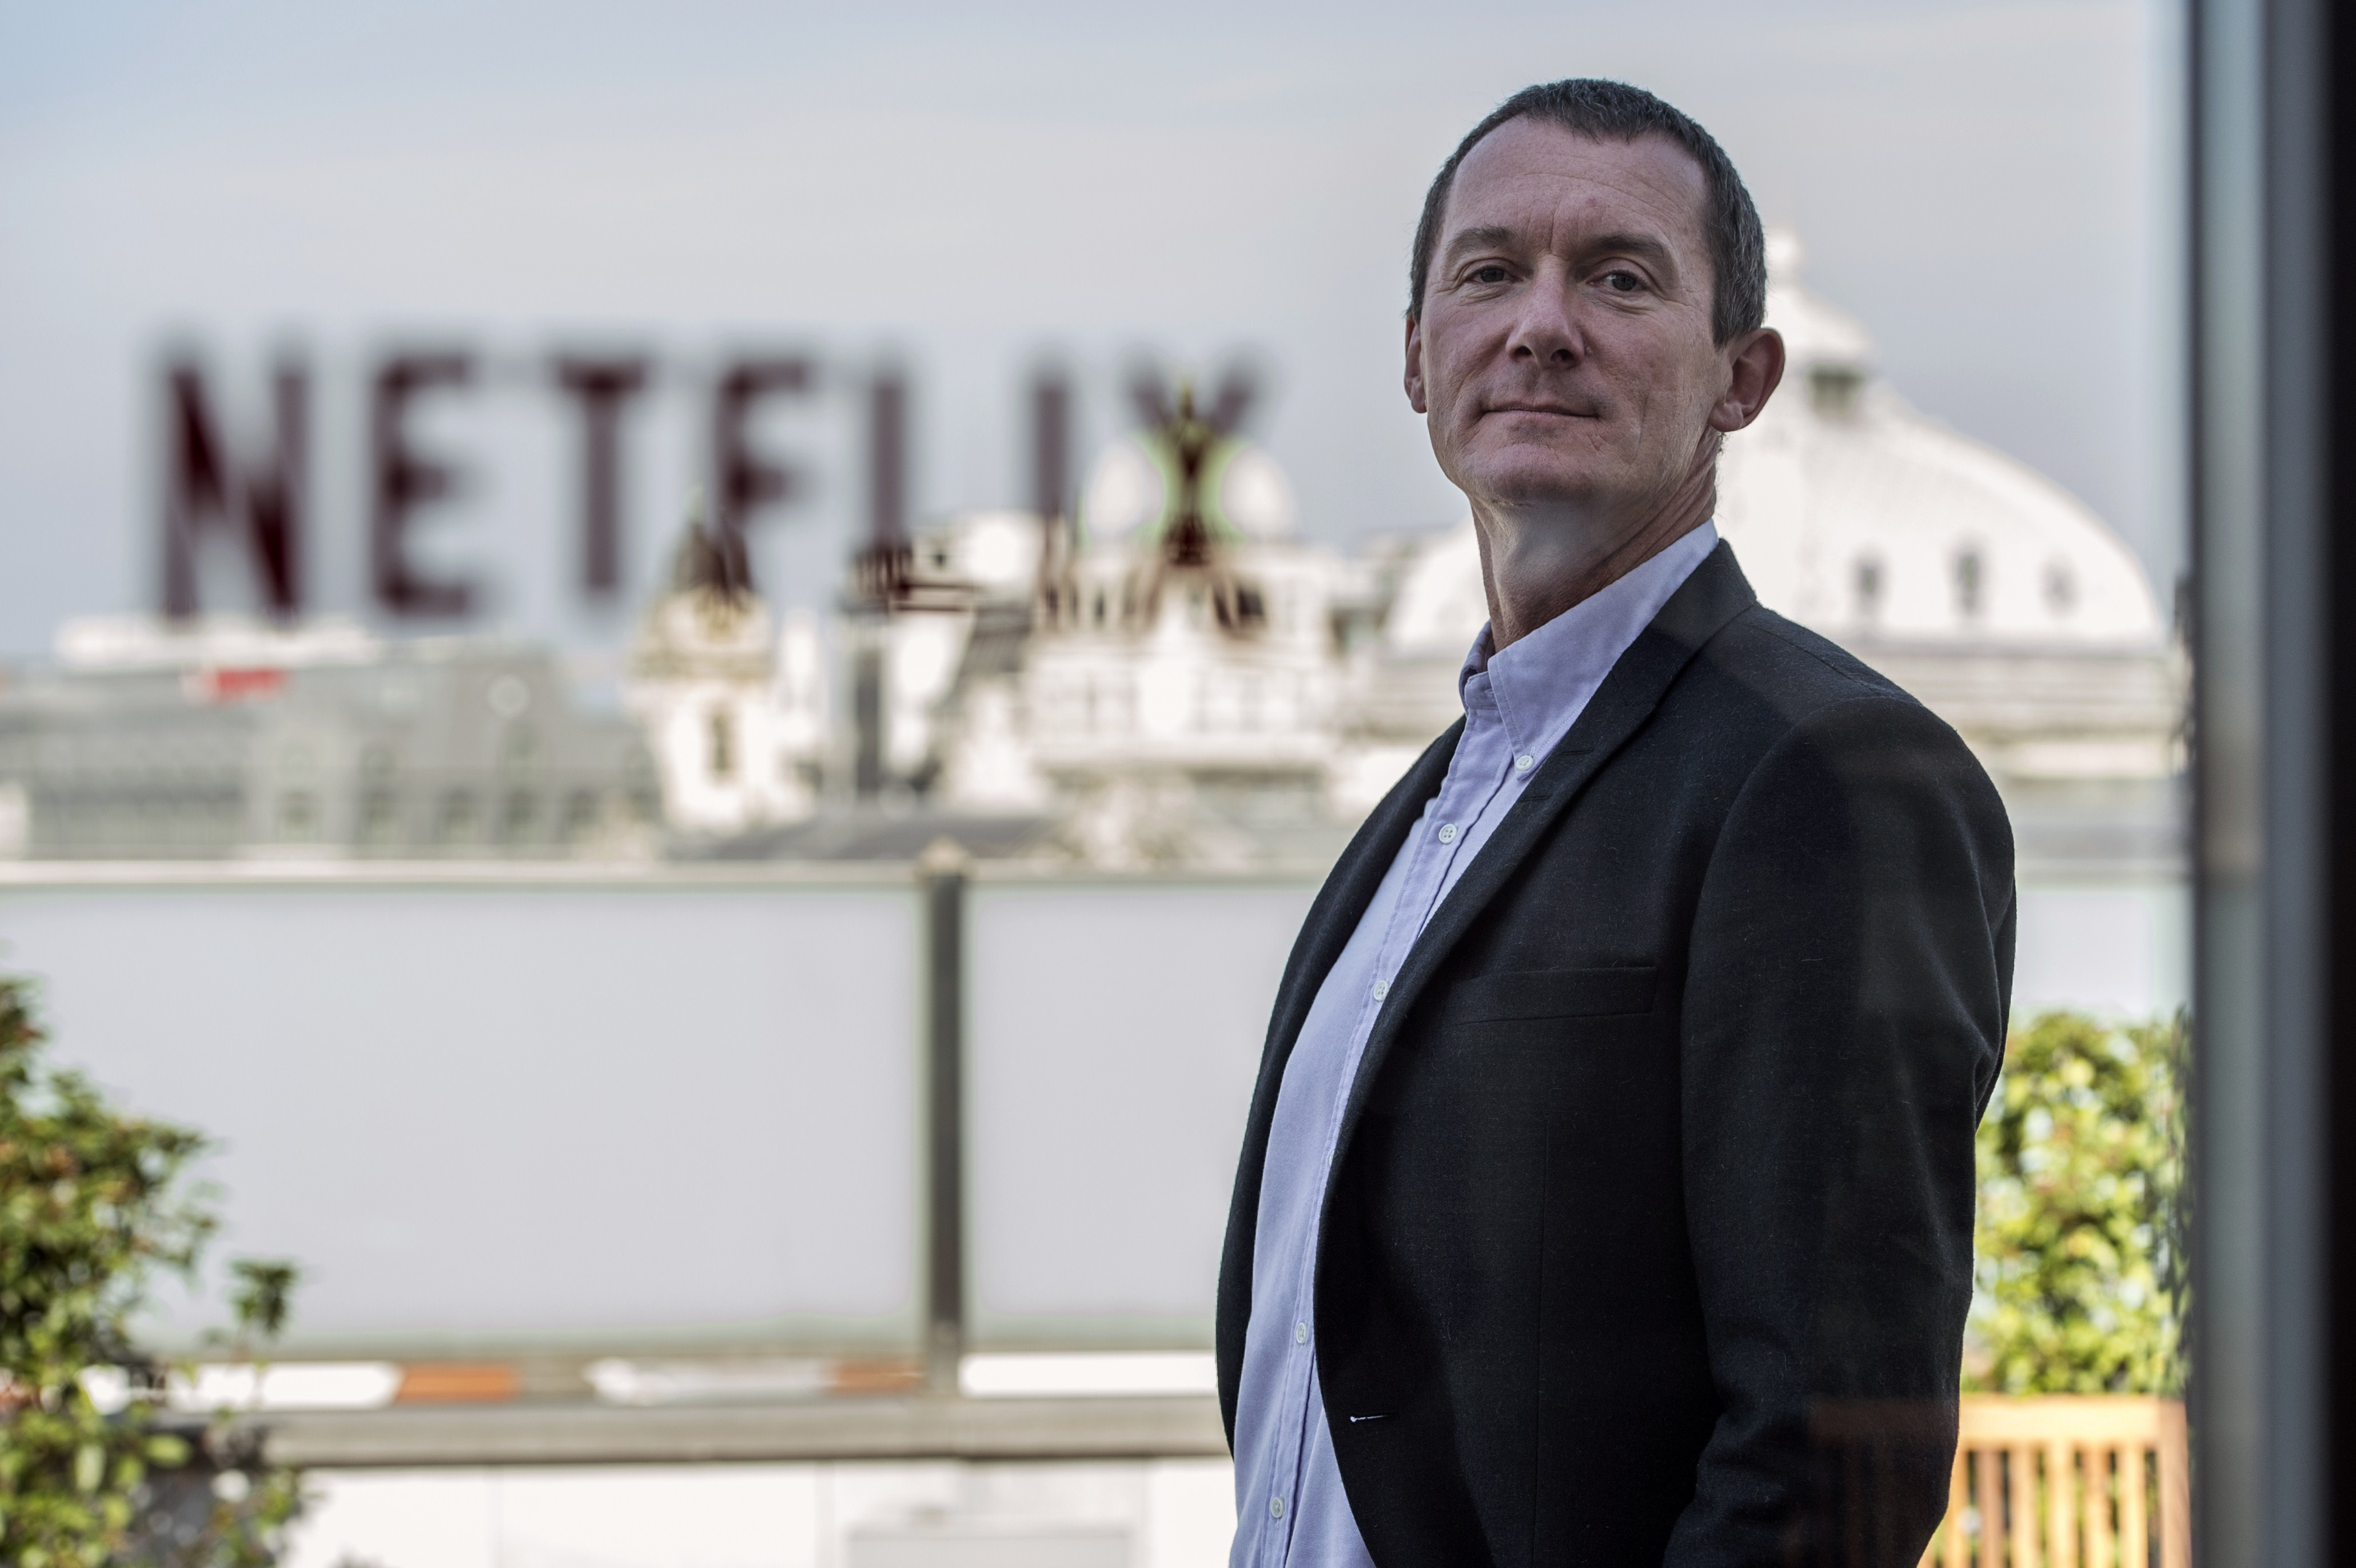 Netflix Chief Product Officer Neil Hunt